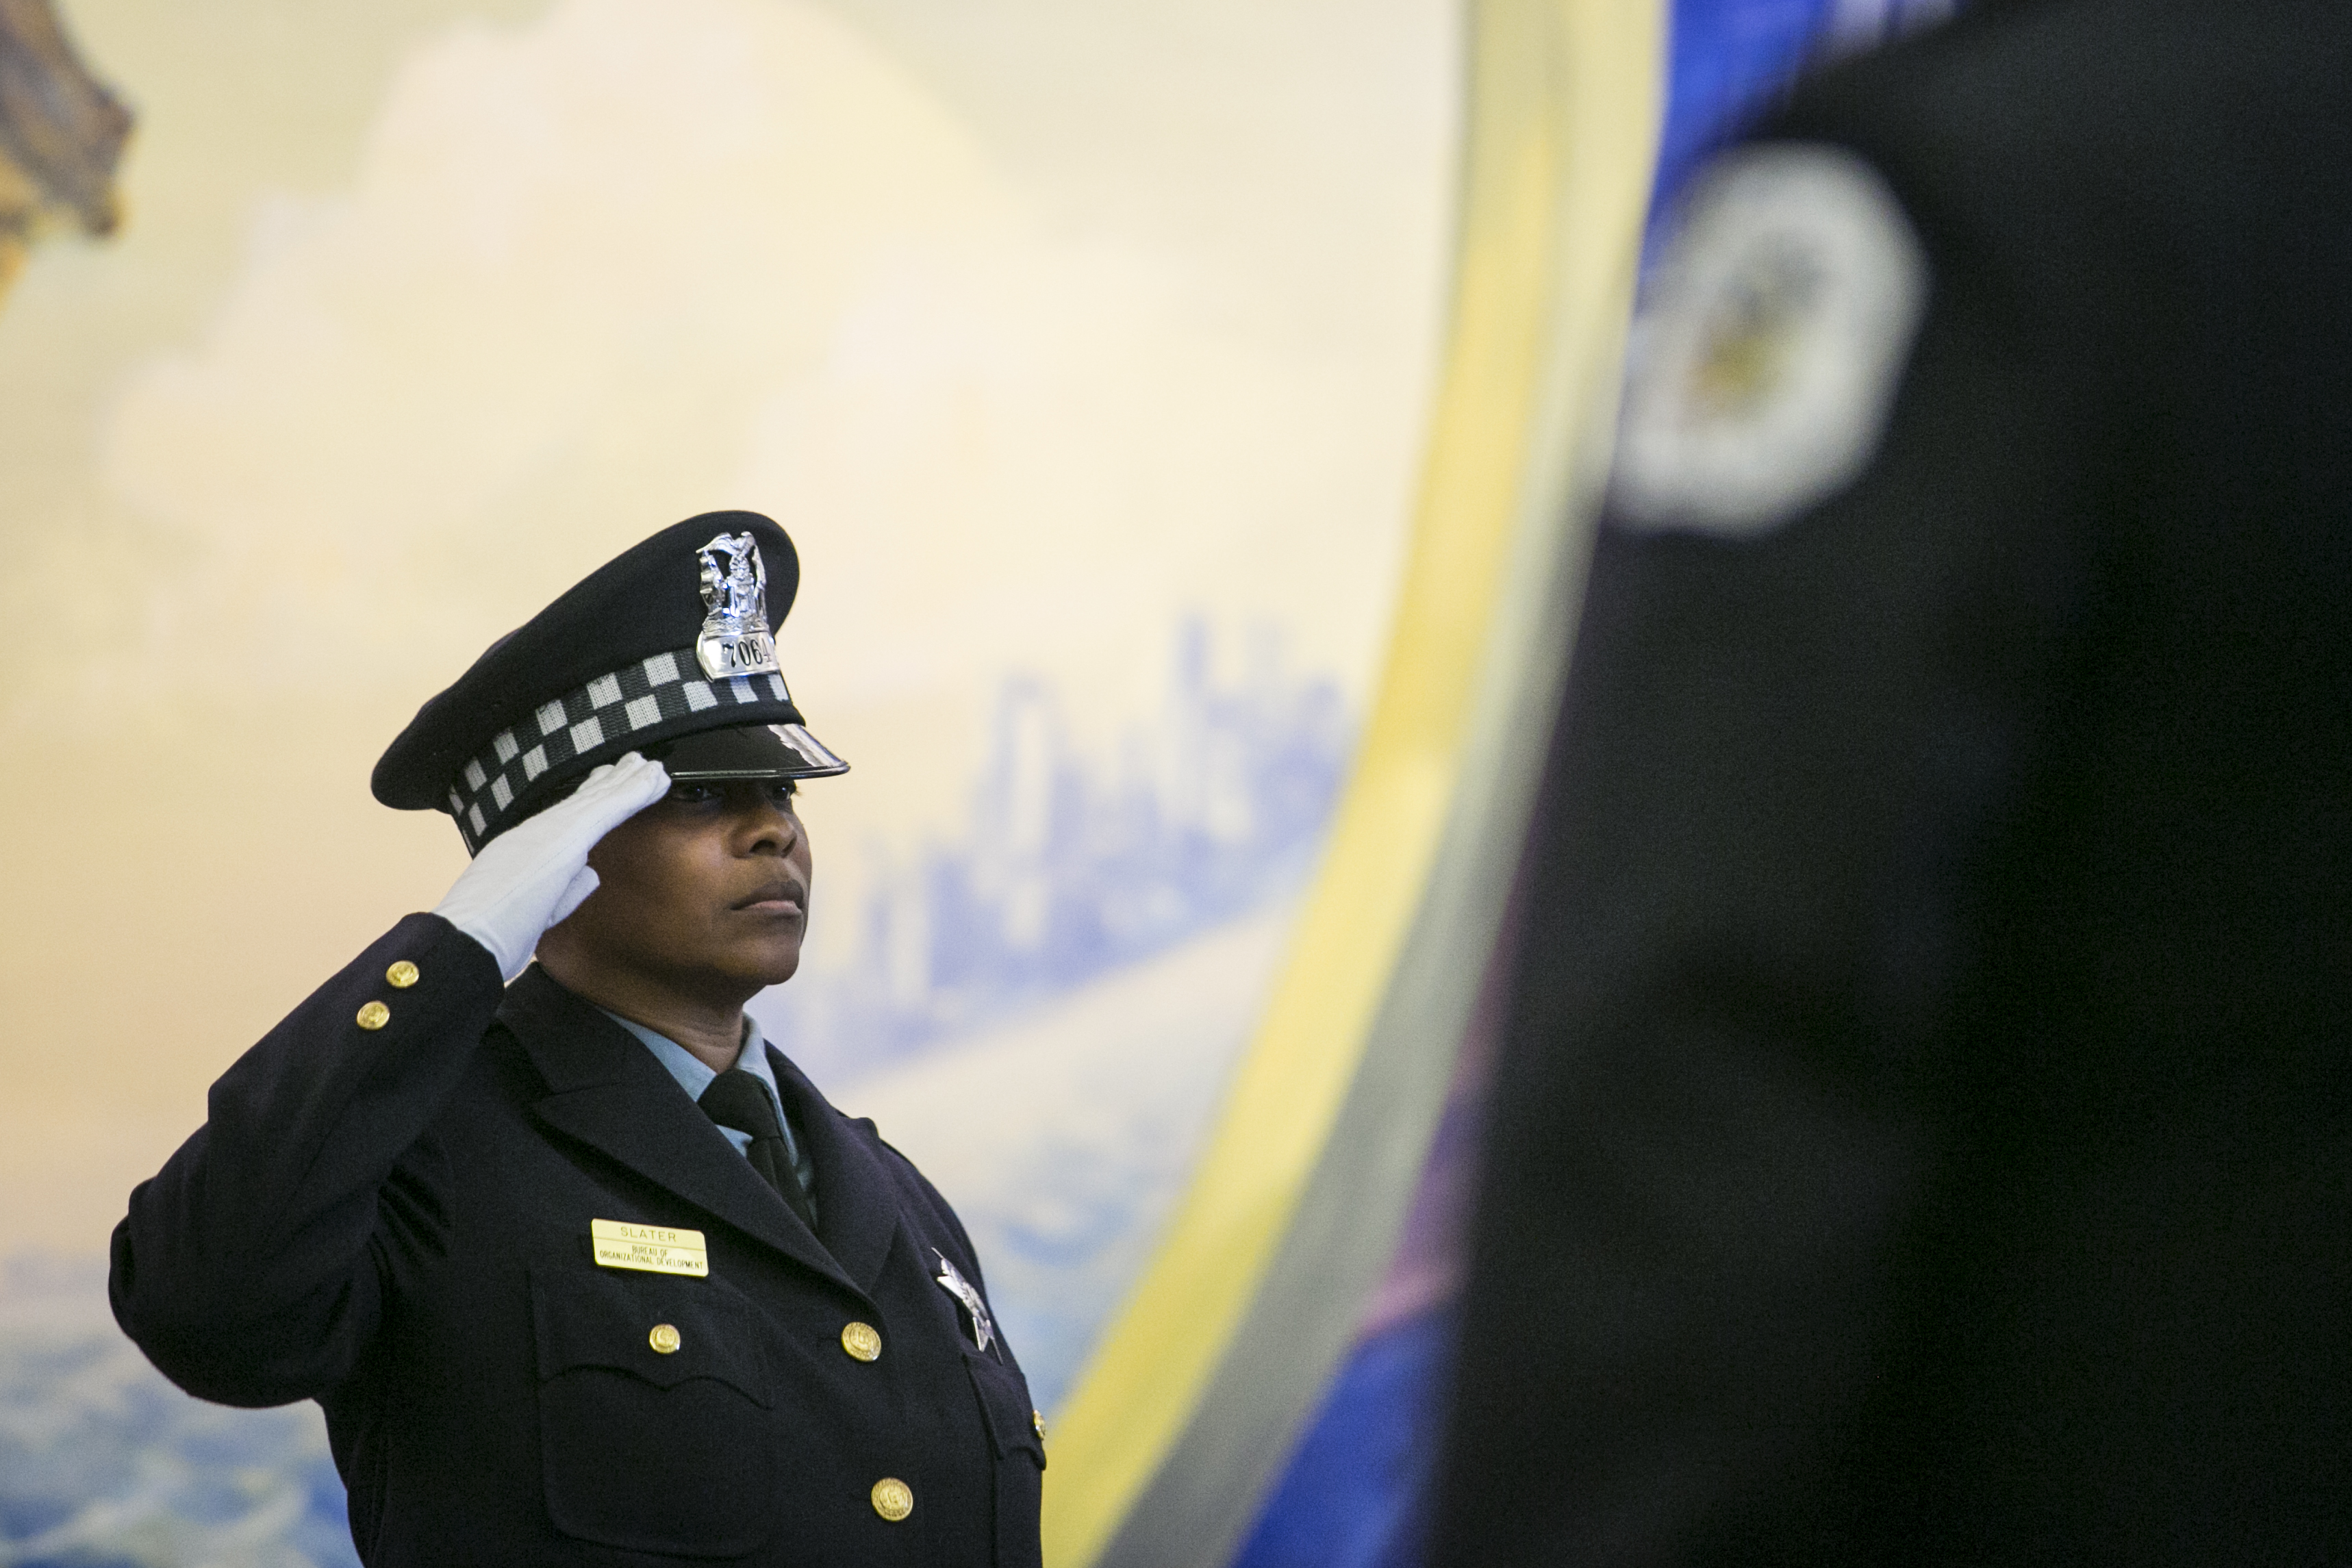 Chicago Police officers participate in an Honored Star Case ceremony, in which fallen Chicago Police Department officers are honored by having their stars and numbers retired, at CPD Headquarters, Tuesday afternoon, July 17, 2018. | Ashlee Rezin/Sun-Times